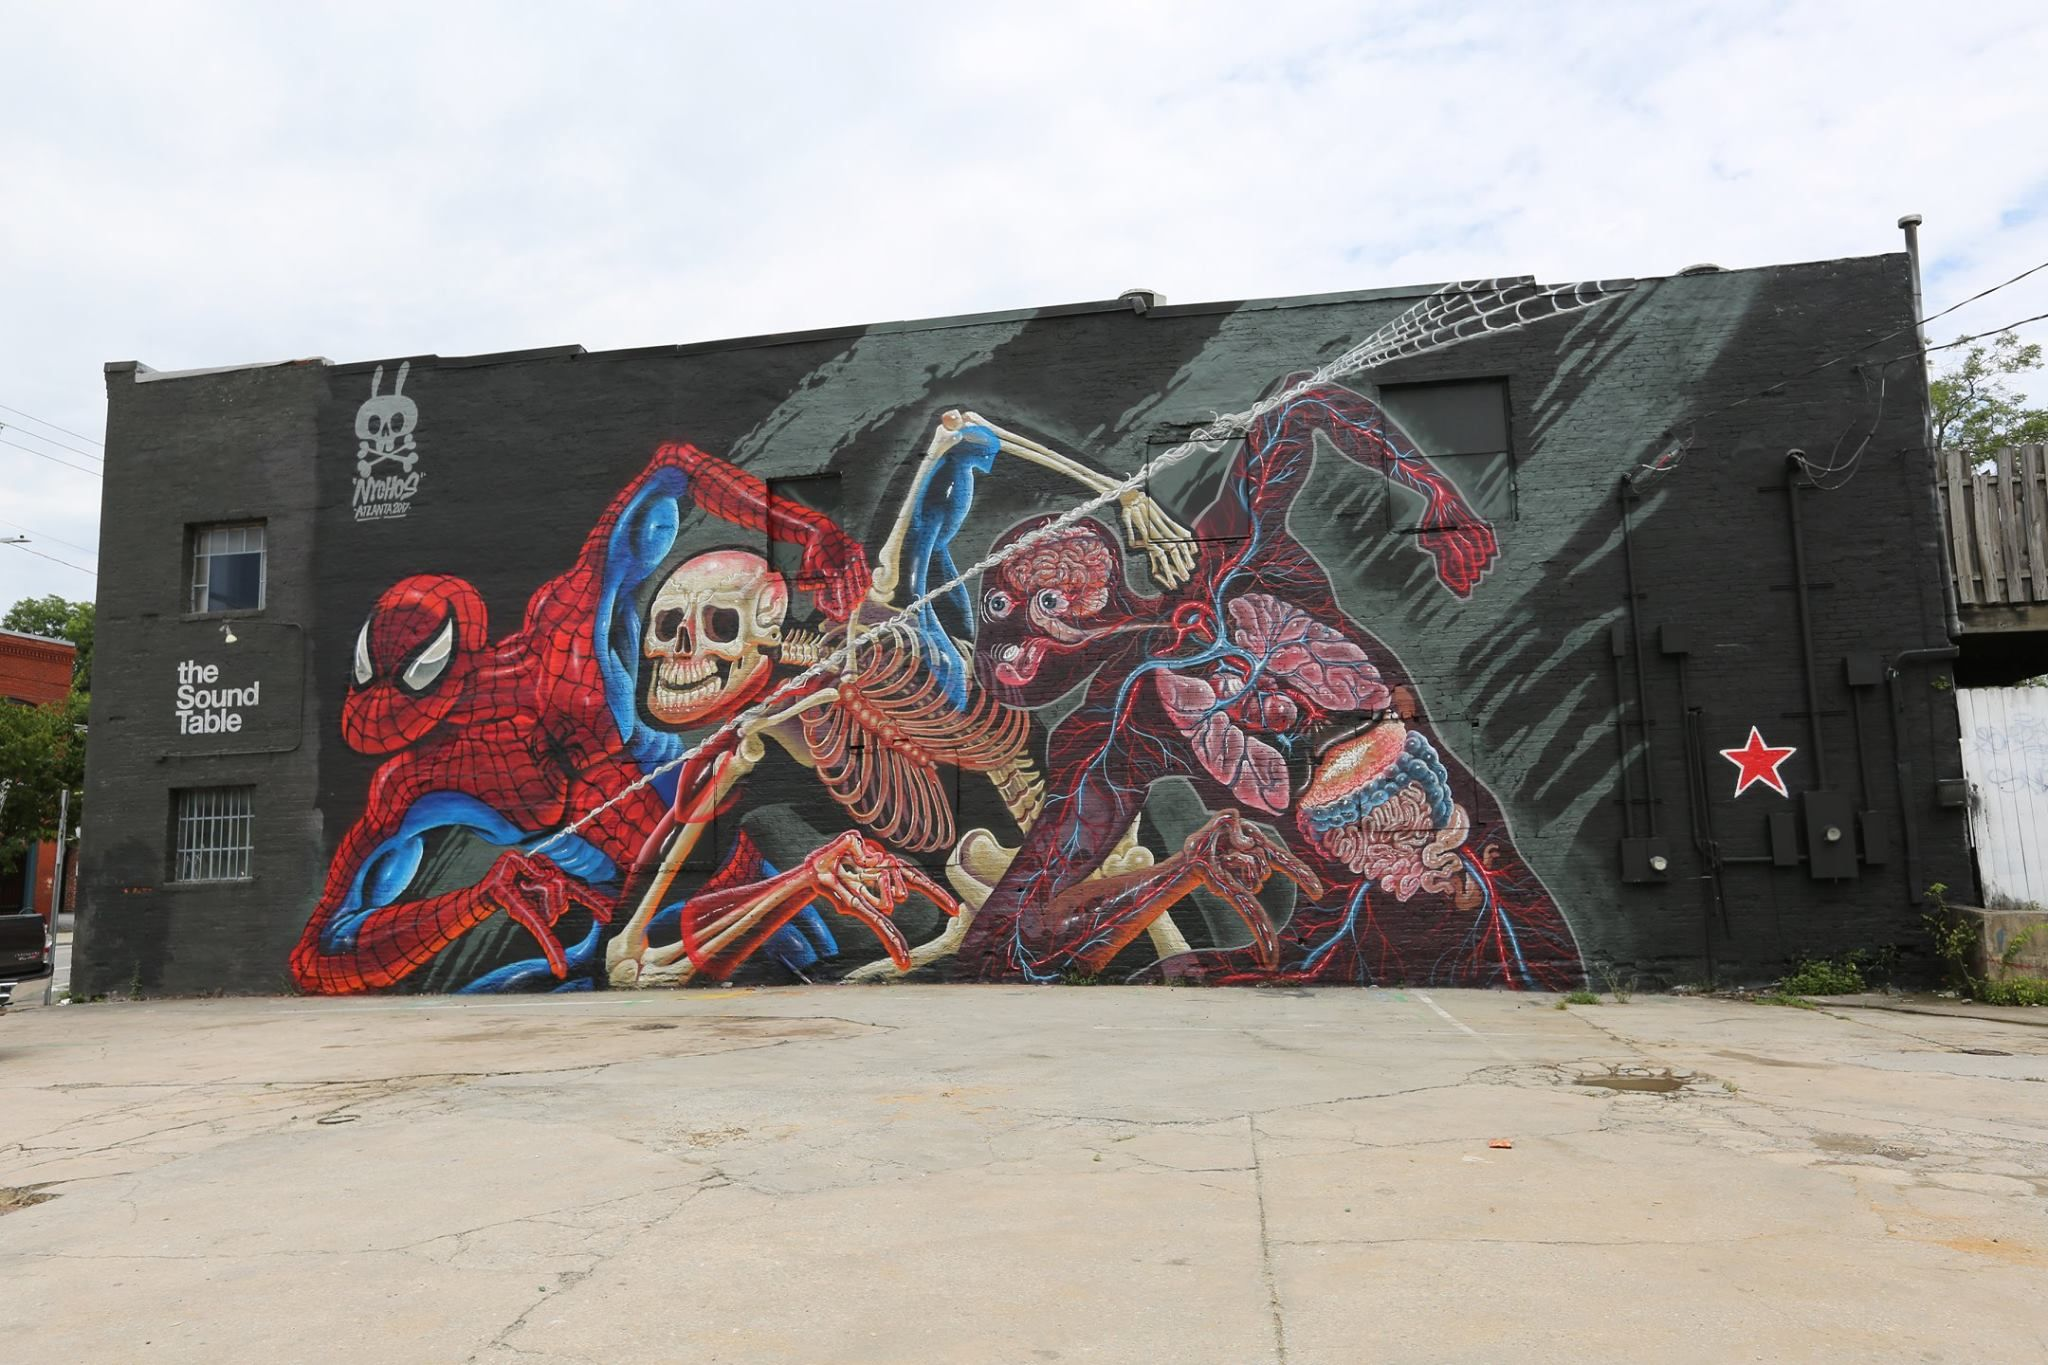 Nychos anatomy of spiderman in atlanta georgia for outta space project 2017